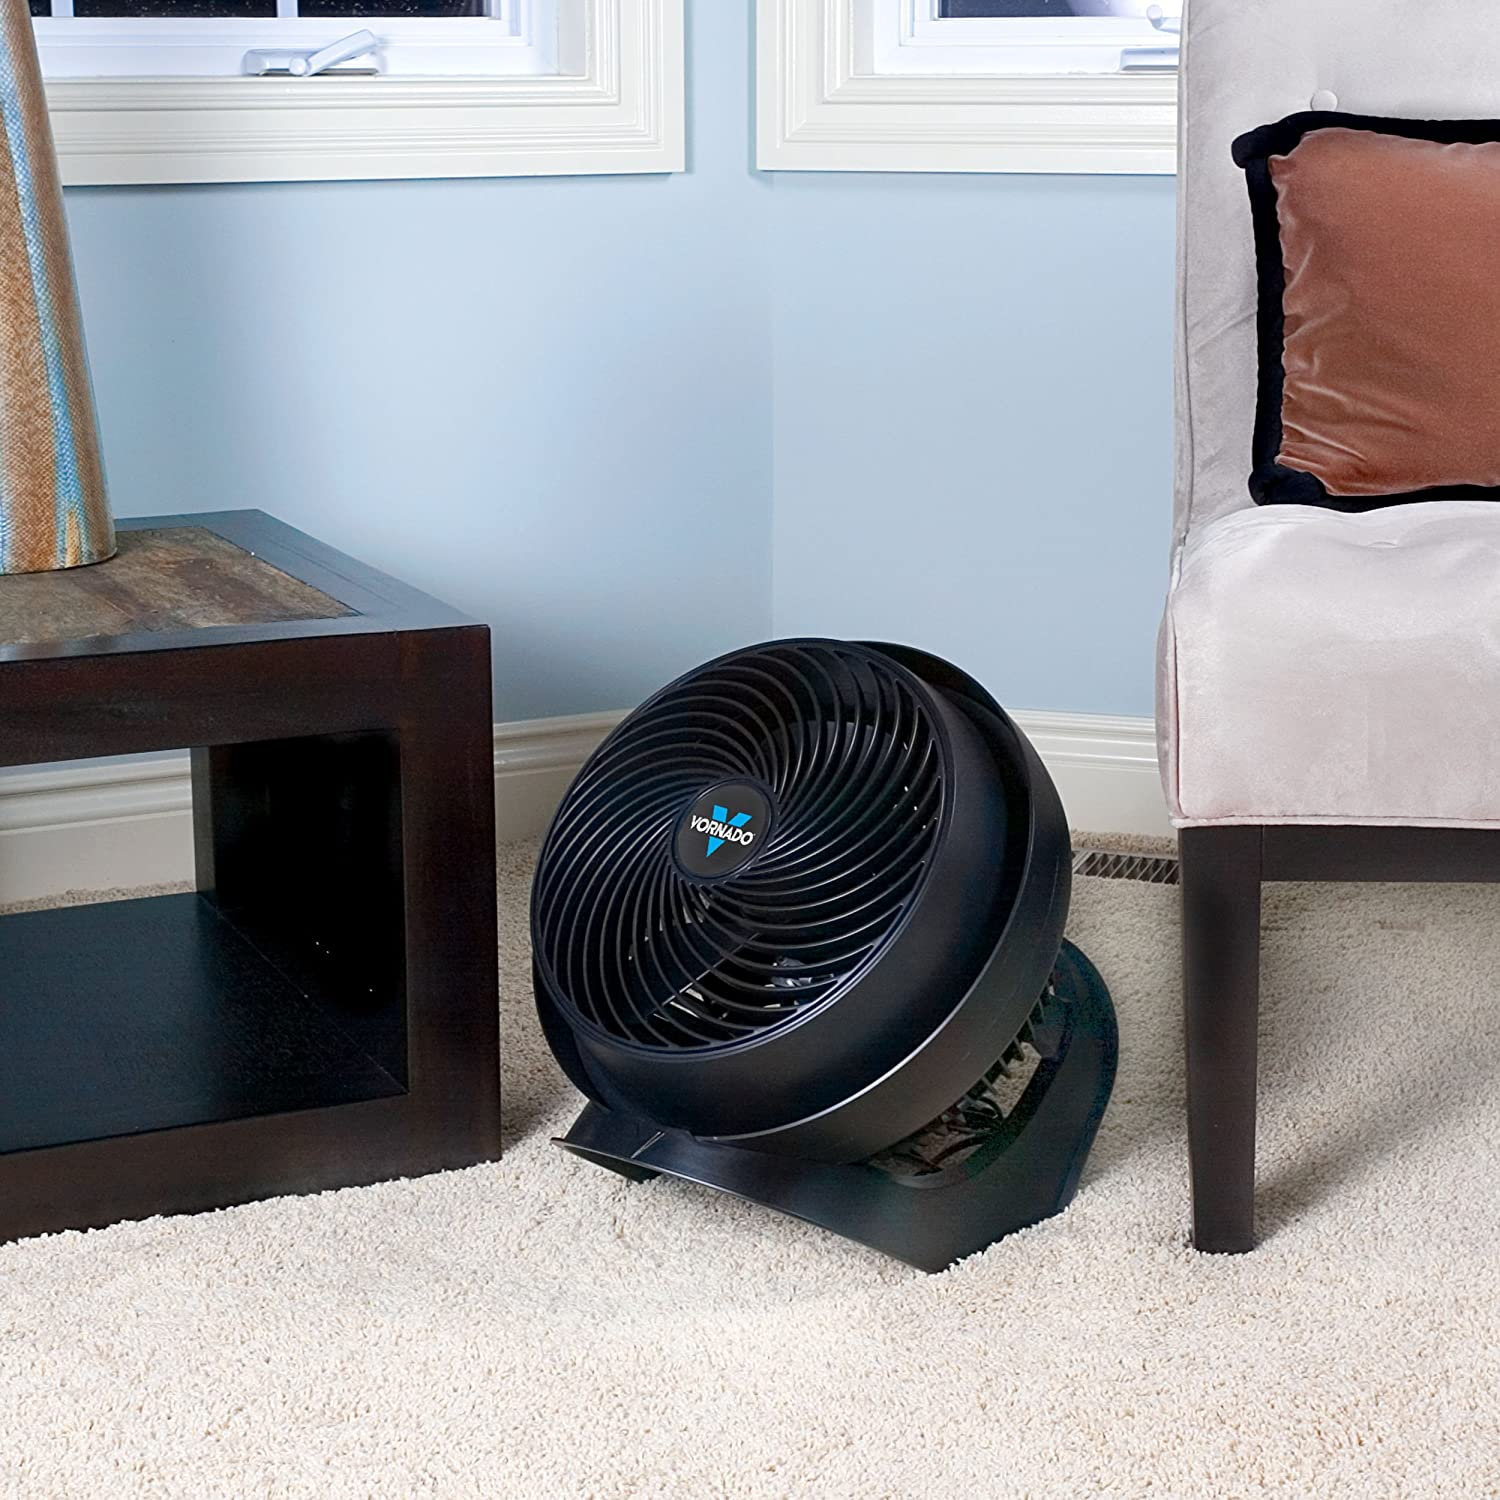 Best Air Circulator and Fan Reviews: Taking care of the air flow 7